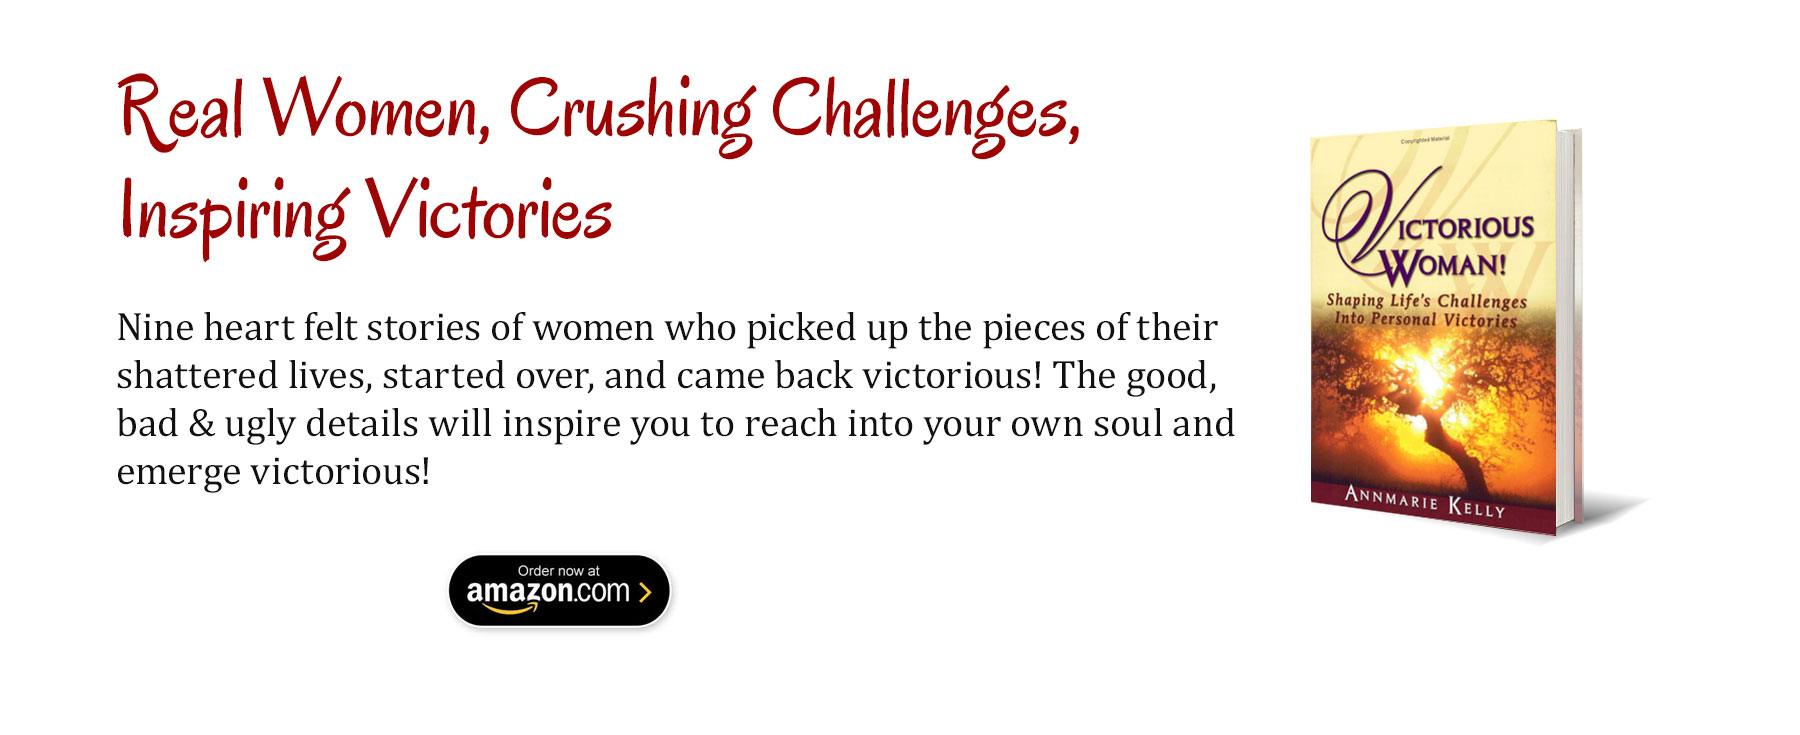 Victorious Woman Book by Annmarie Kelly